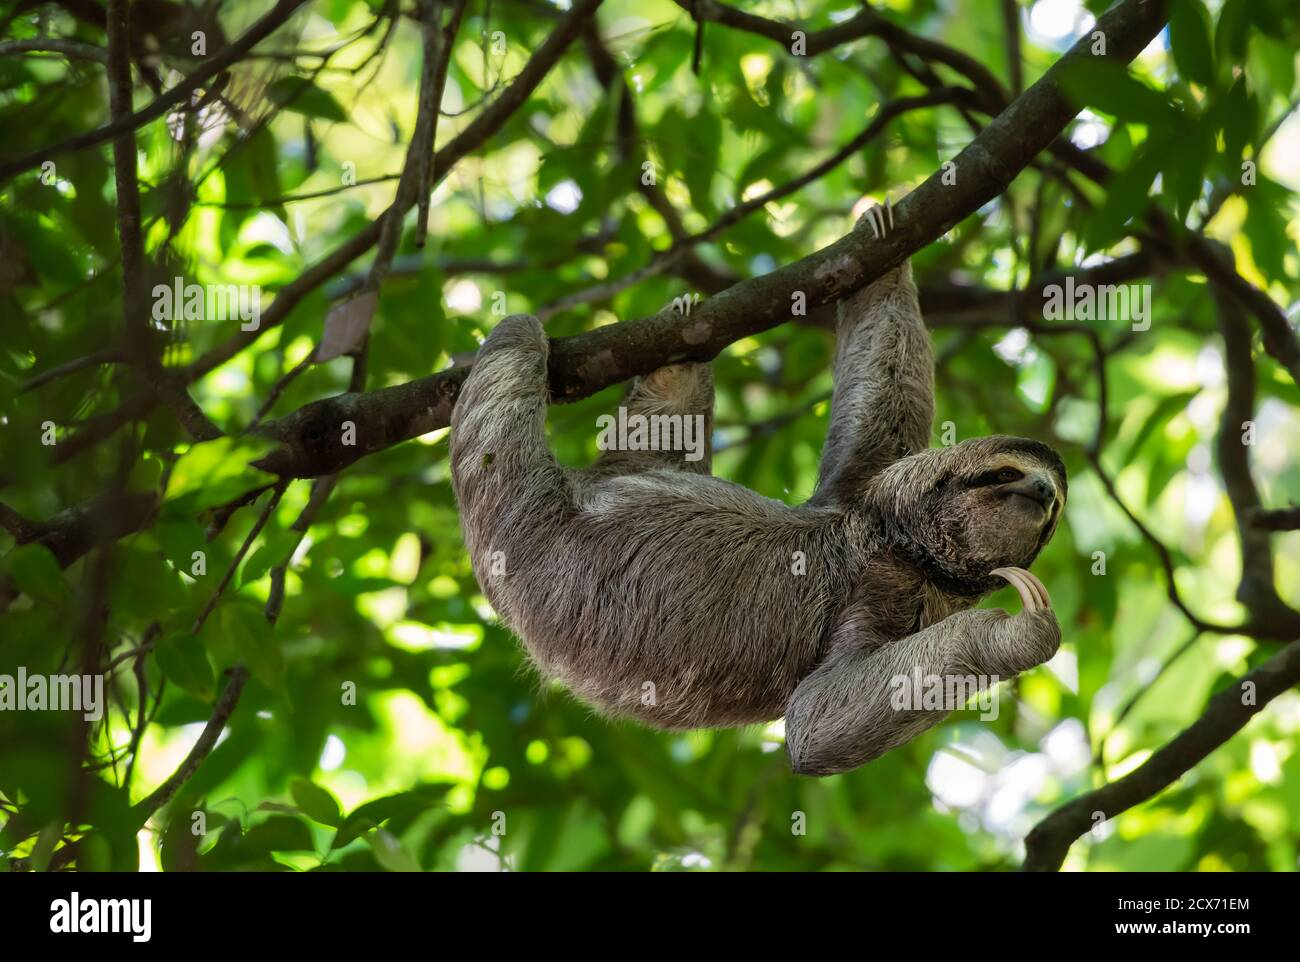 Funny sloth hanging on tree branch, cute face look, perfect portrait of wild animal, Rainforest of Costa Rica, scratching chin, Bradypus variegatus Stock Photo